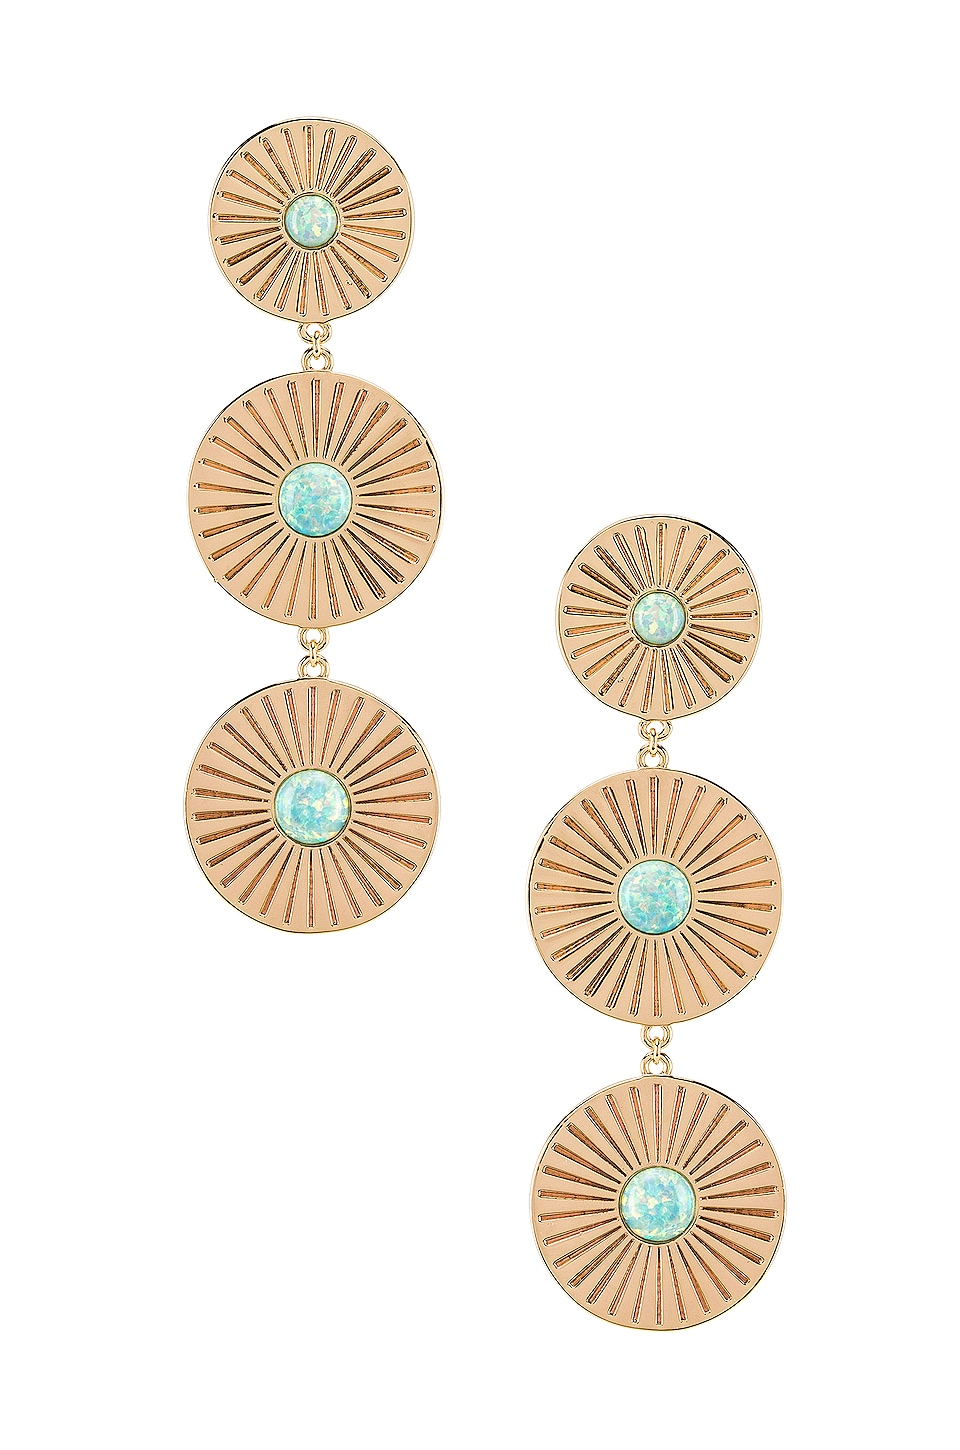 Elizabeth Stone Drop Earrings in Gold & Aqua Opal